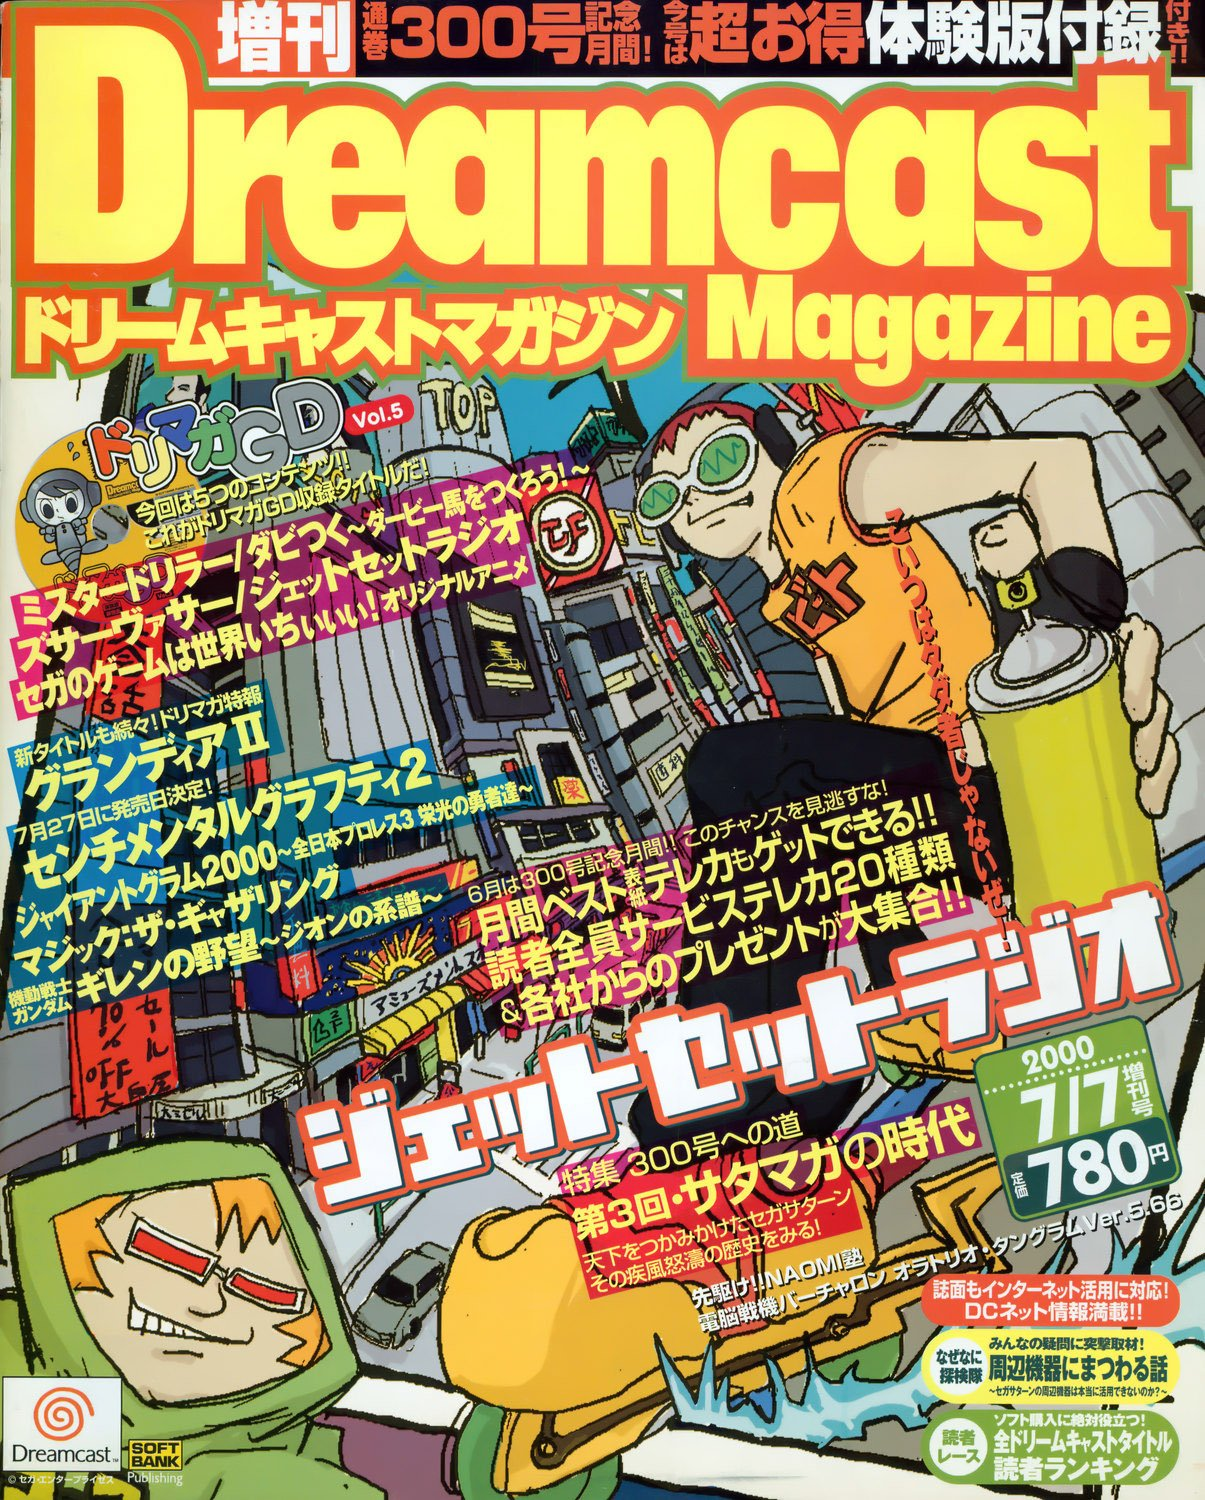 Dreamcast Magazine 075 (July 7, 2000)